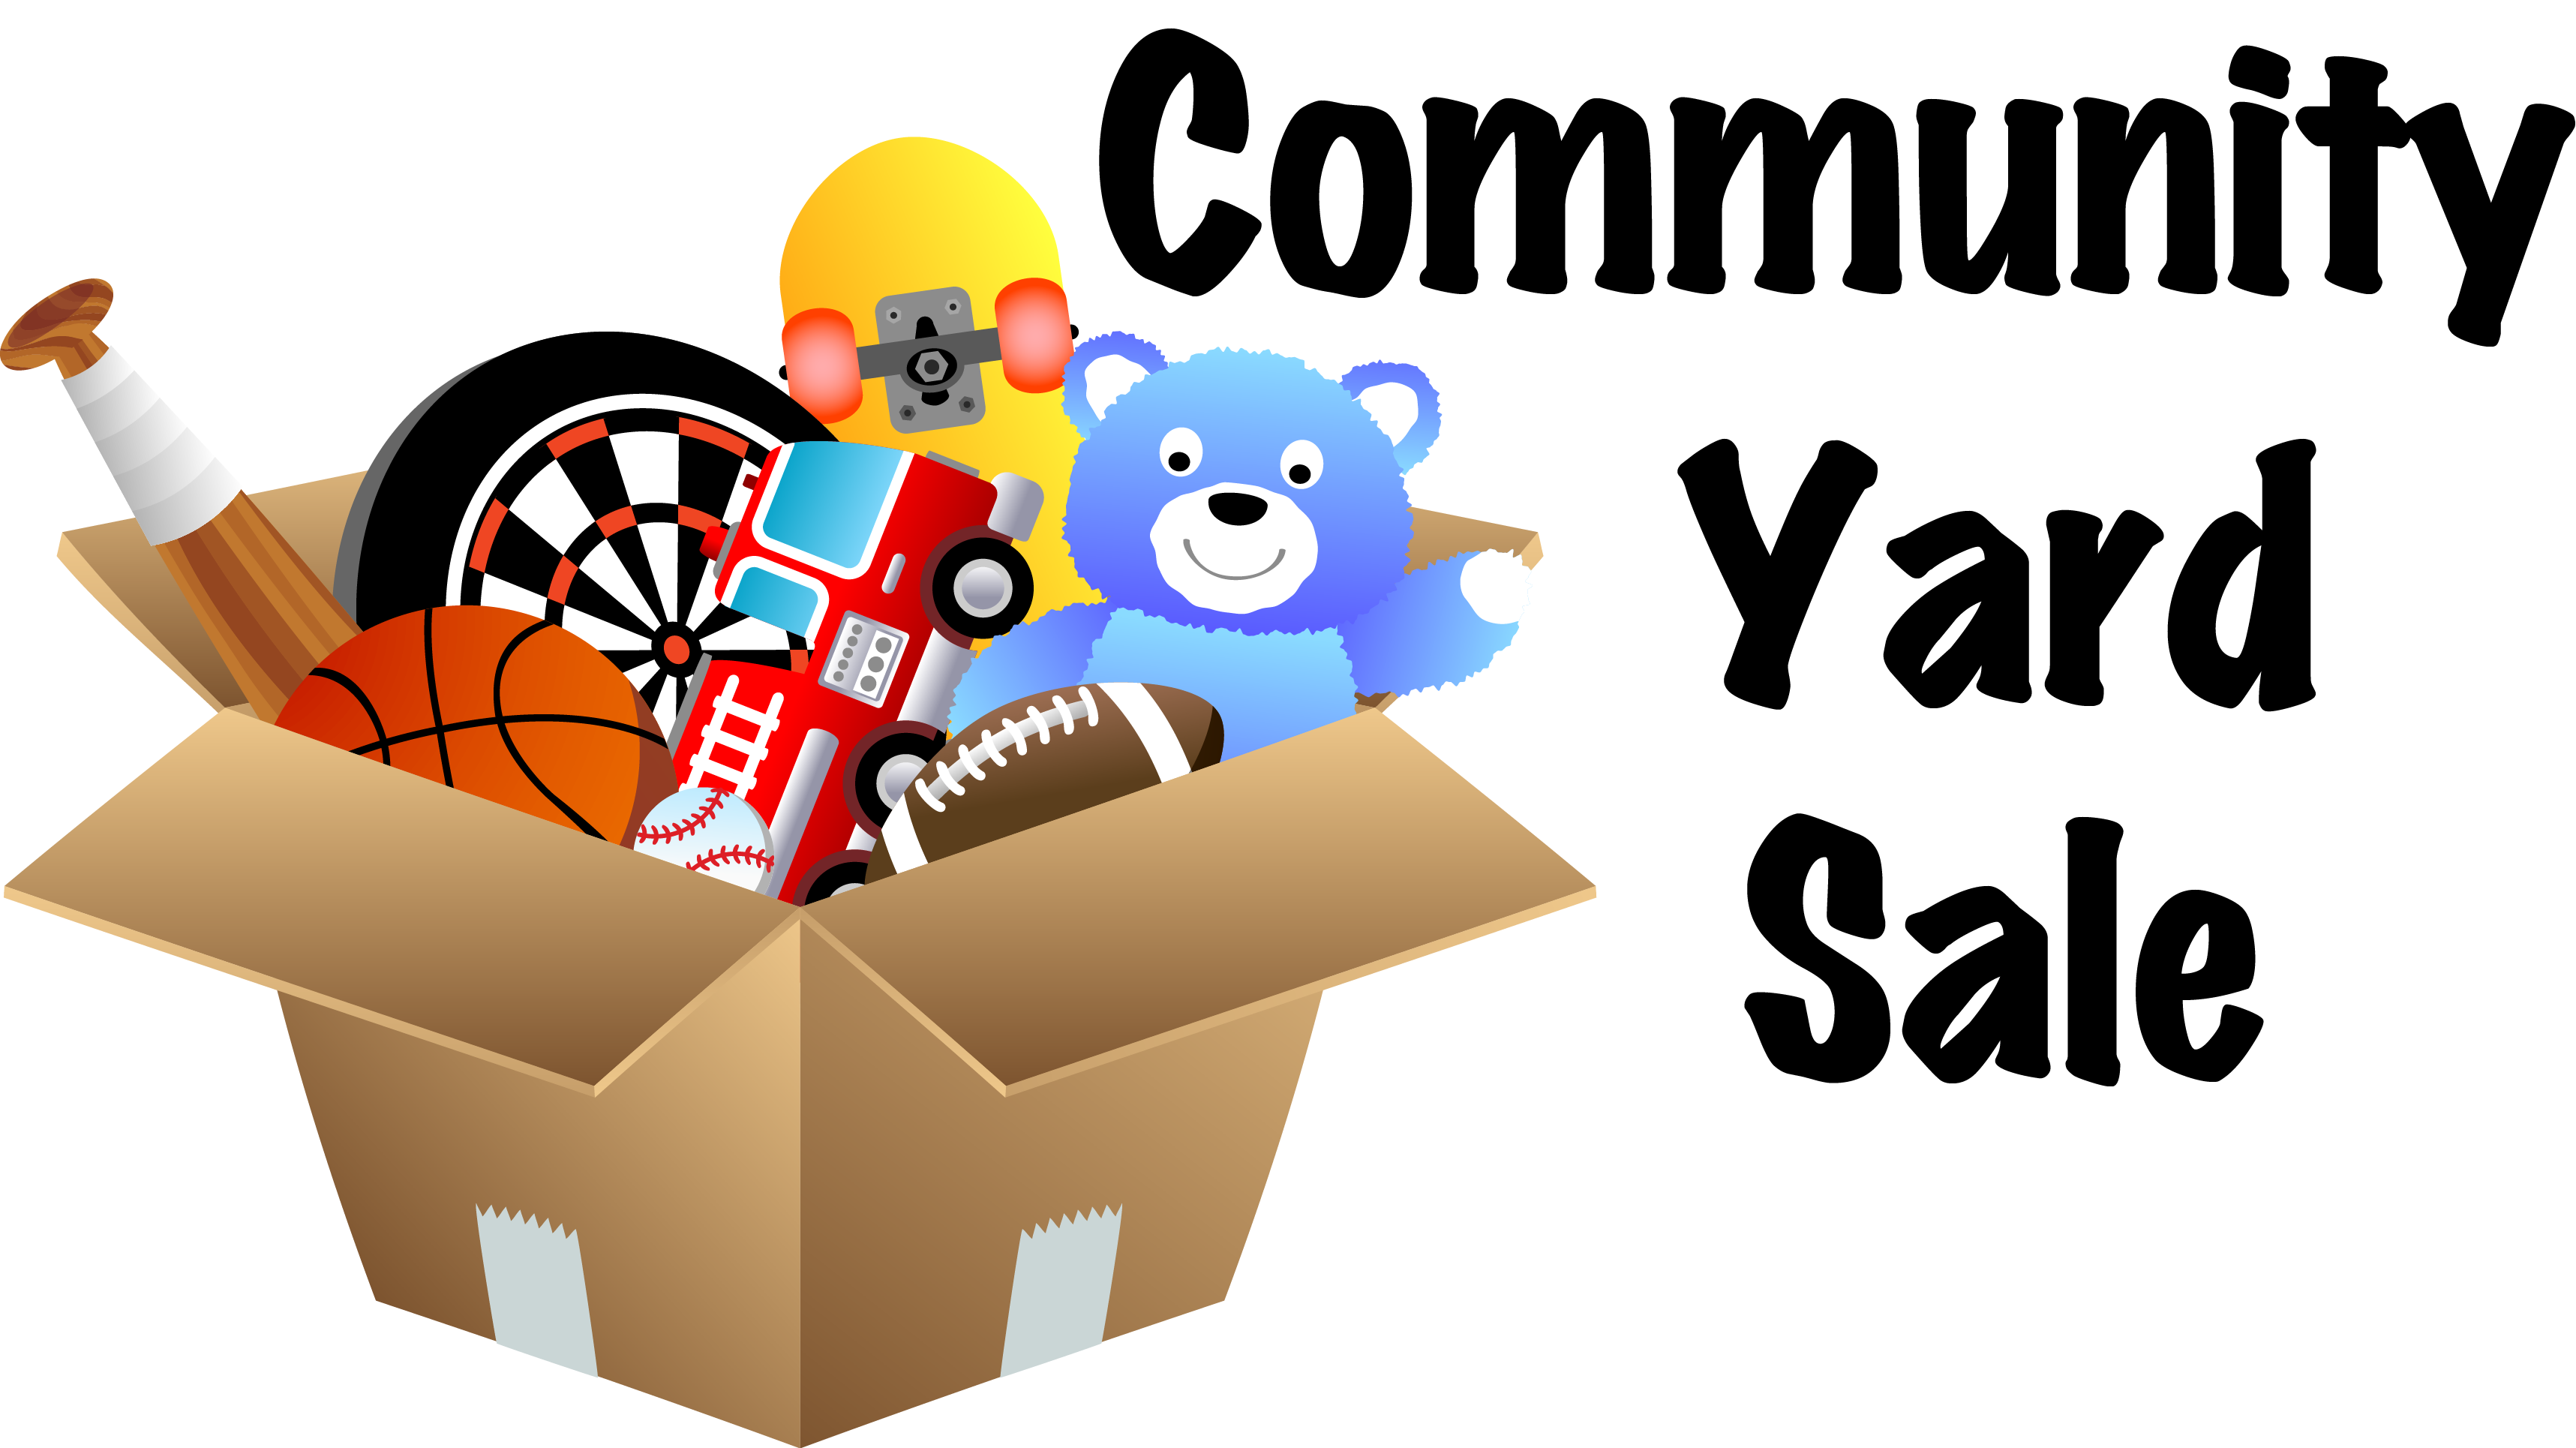 Yard clipart transparent. Community sale signs